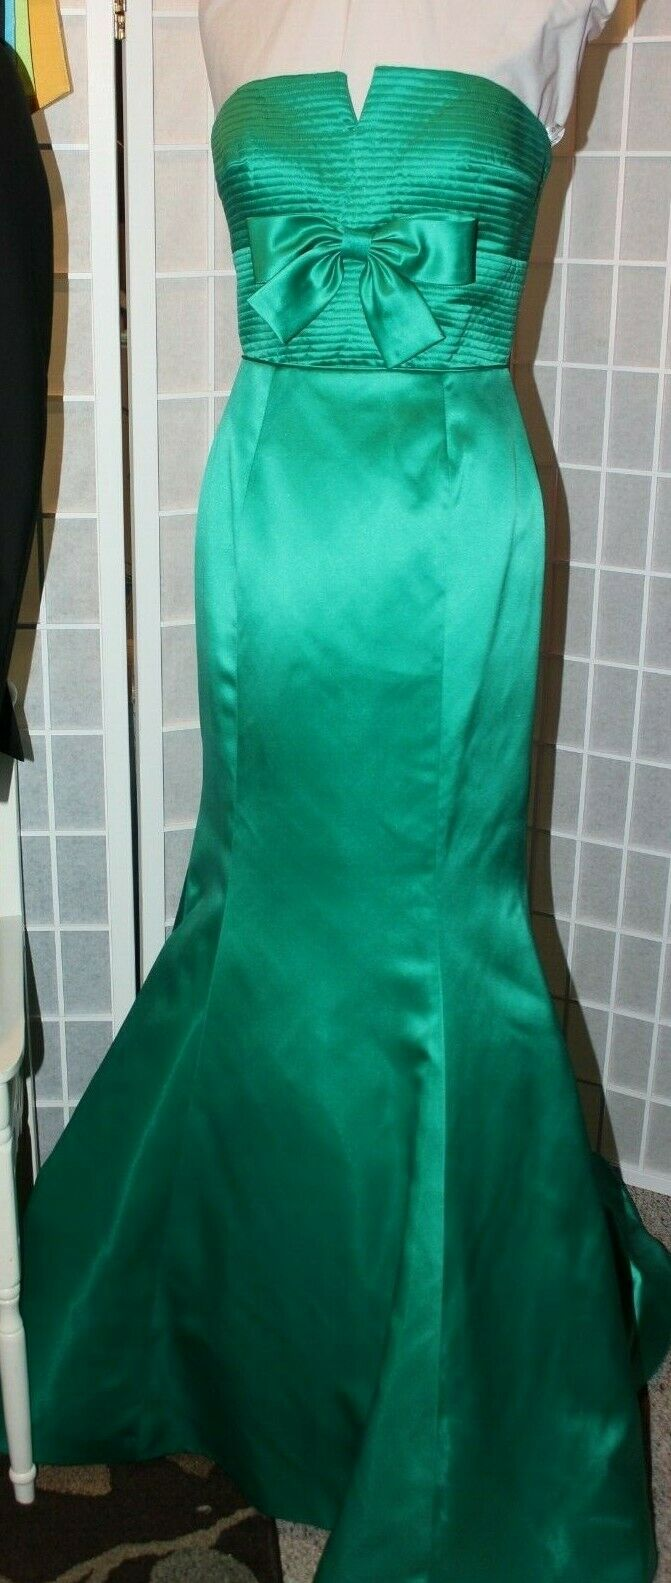 NWT Sherri Hill 50543 Size 6 EMERALD green satin long formal evening gown PROM